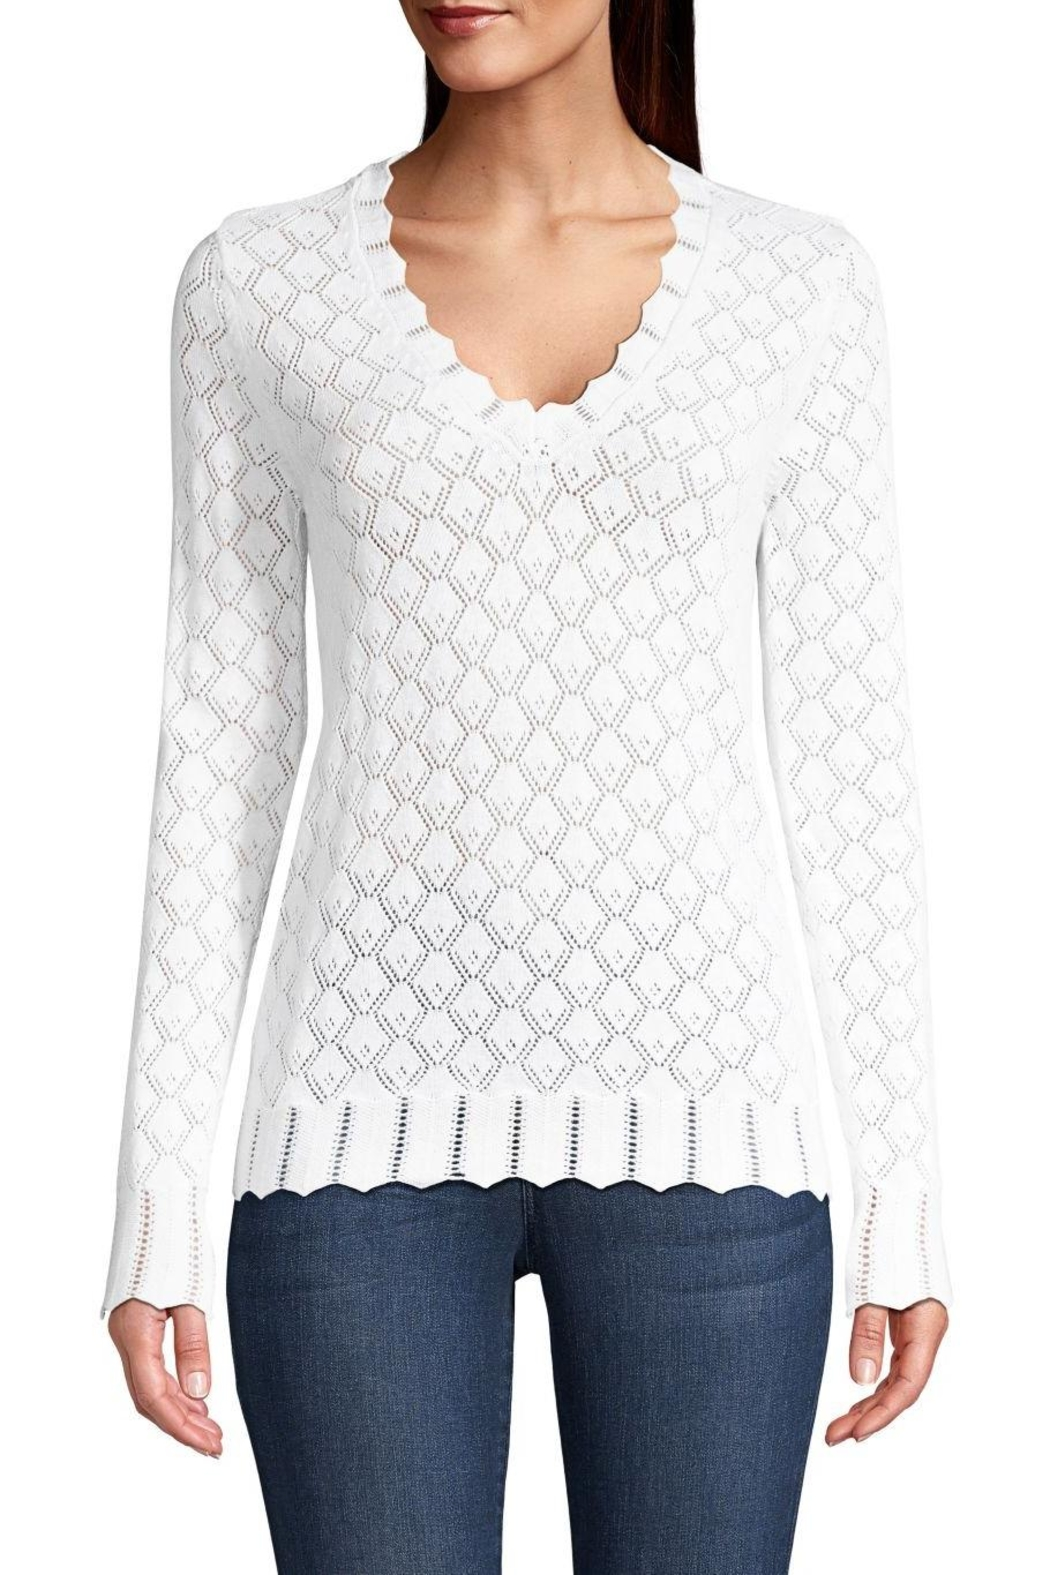 Minnie Rose Pointelle V-Neck Sweater - Main Image